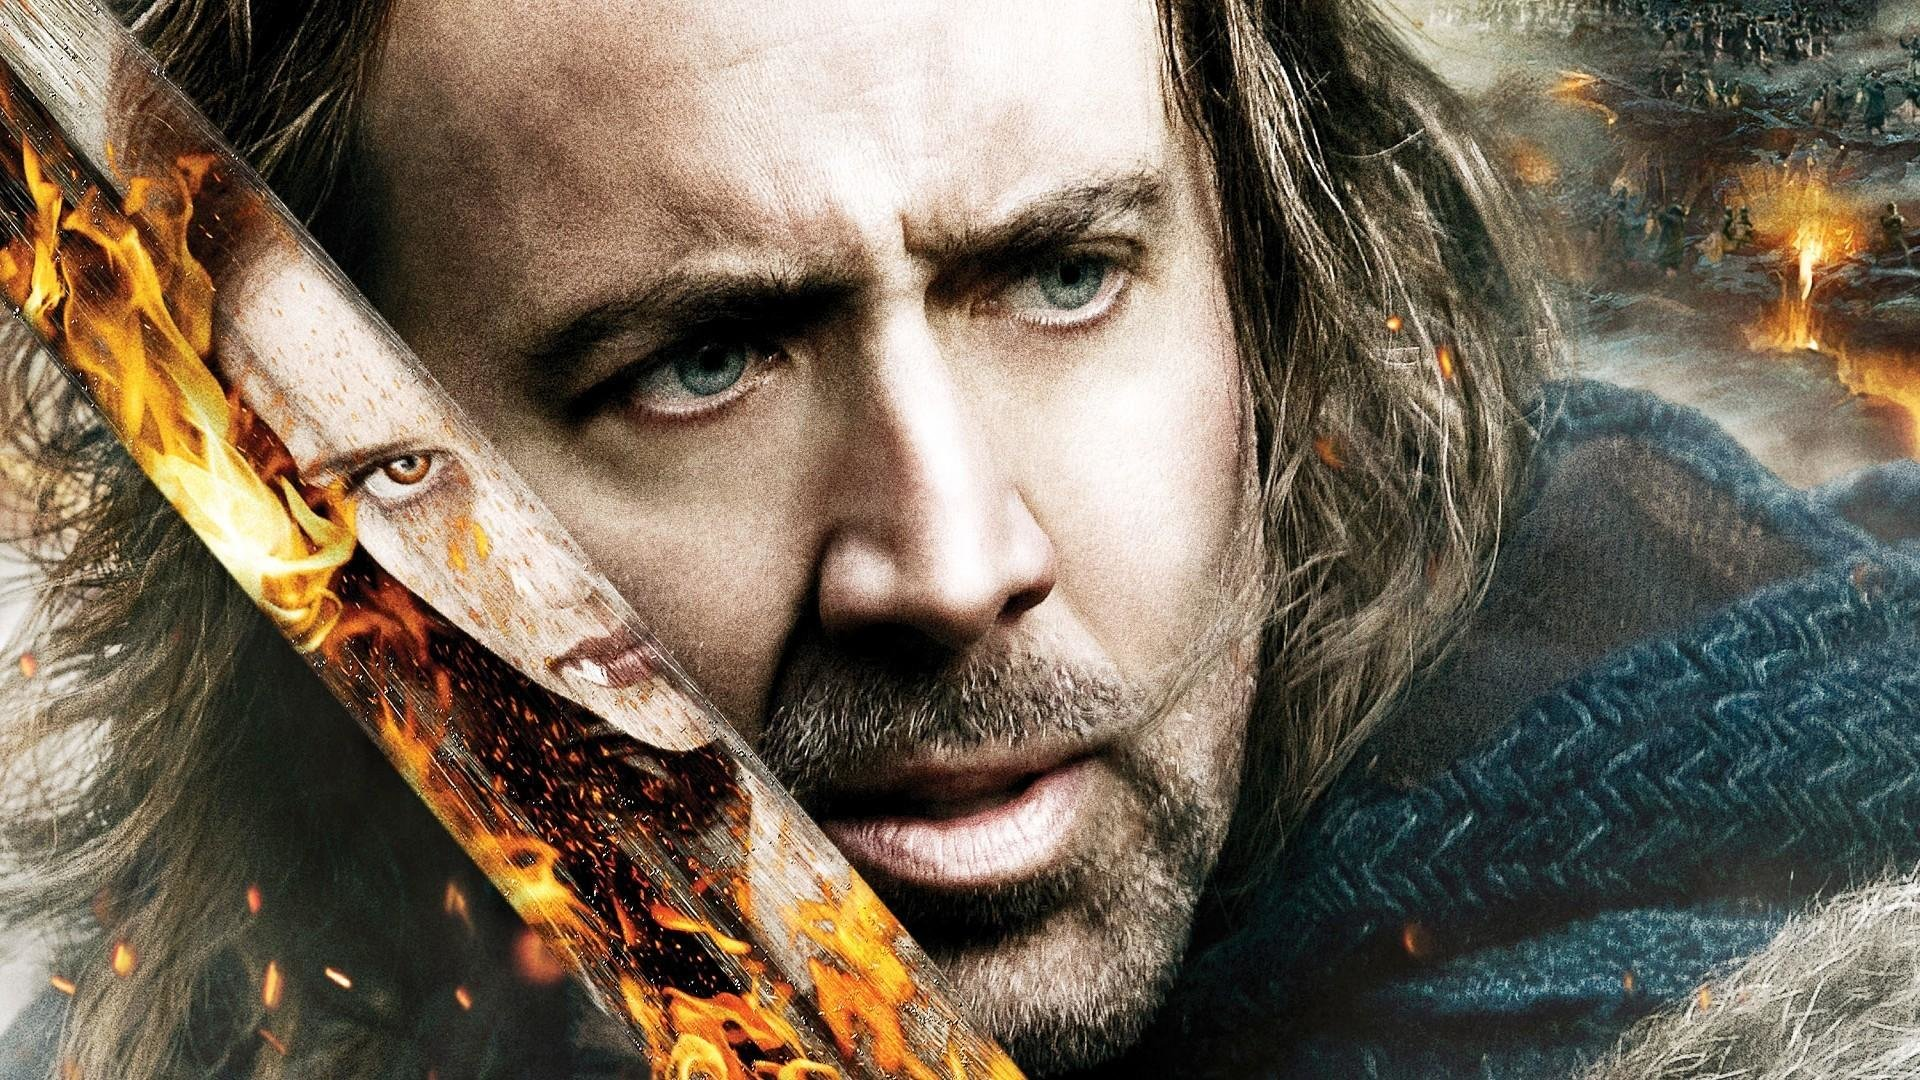 Free download Nicolas Cage background ID:80866 full hd 1920x1080 for PC